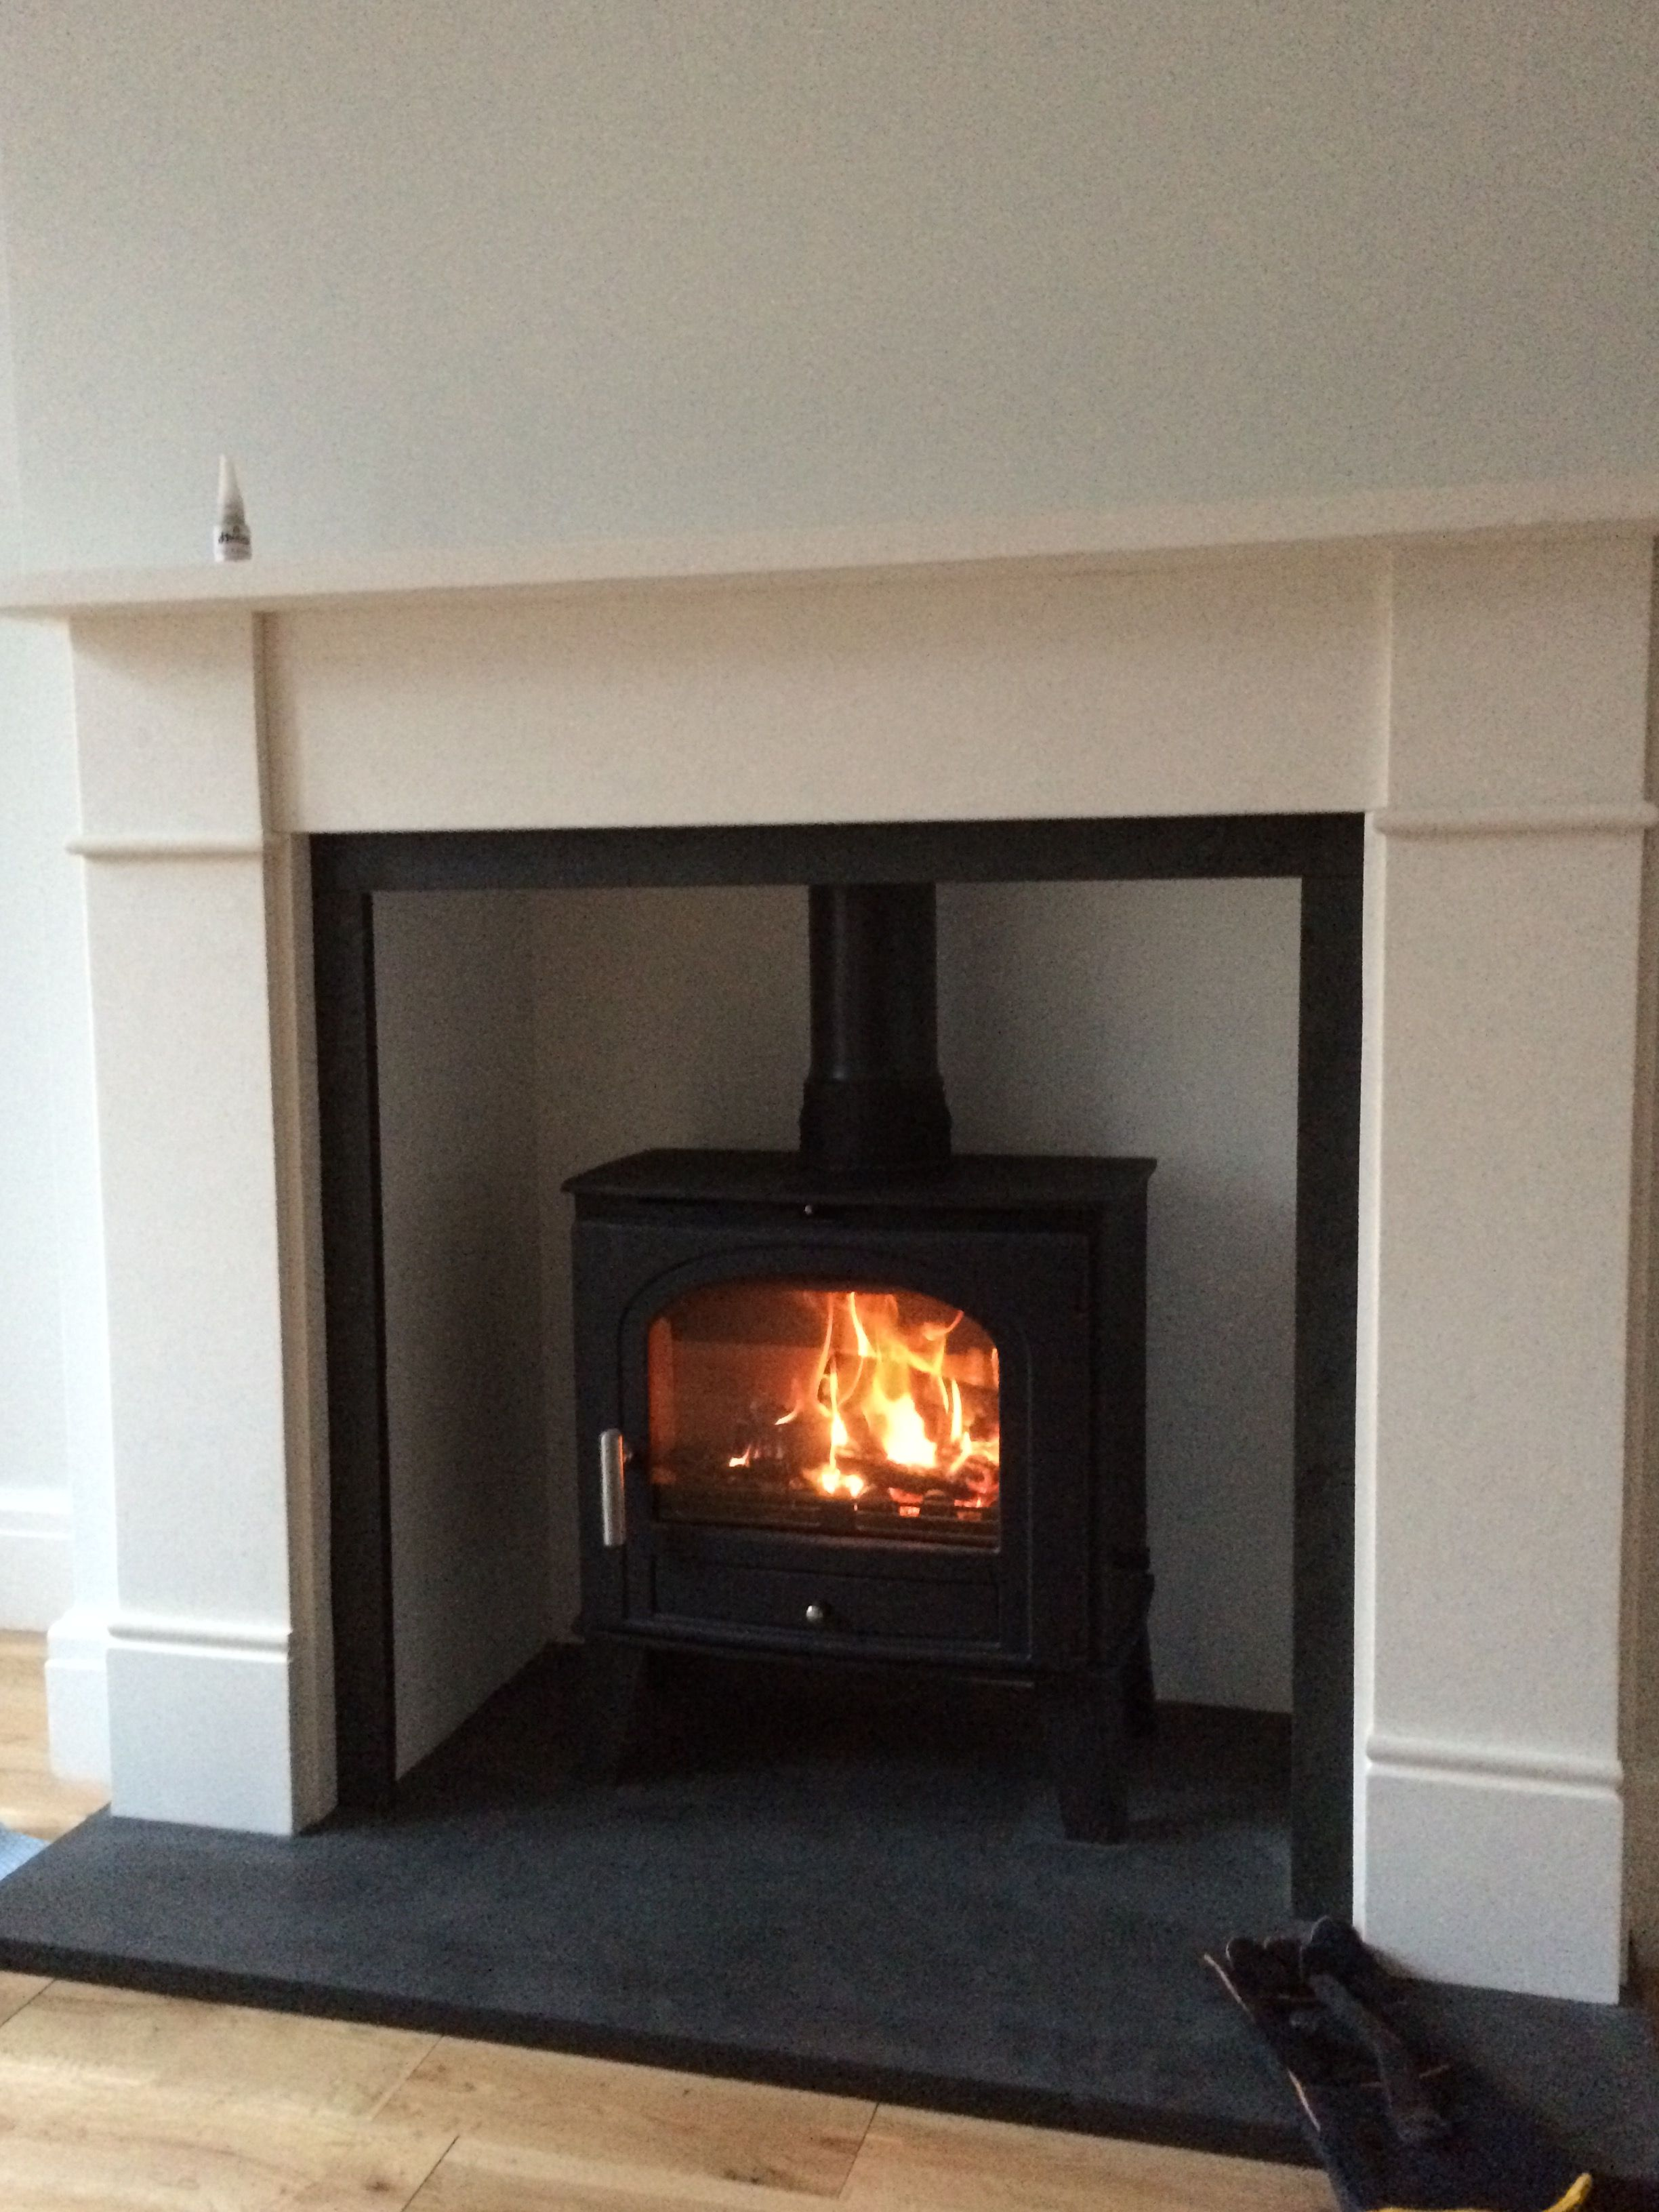 Pin By Archie On Wood Stove Ideas Front Room Design Family Room